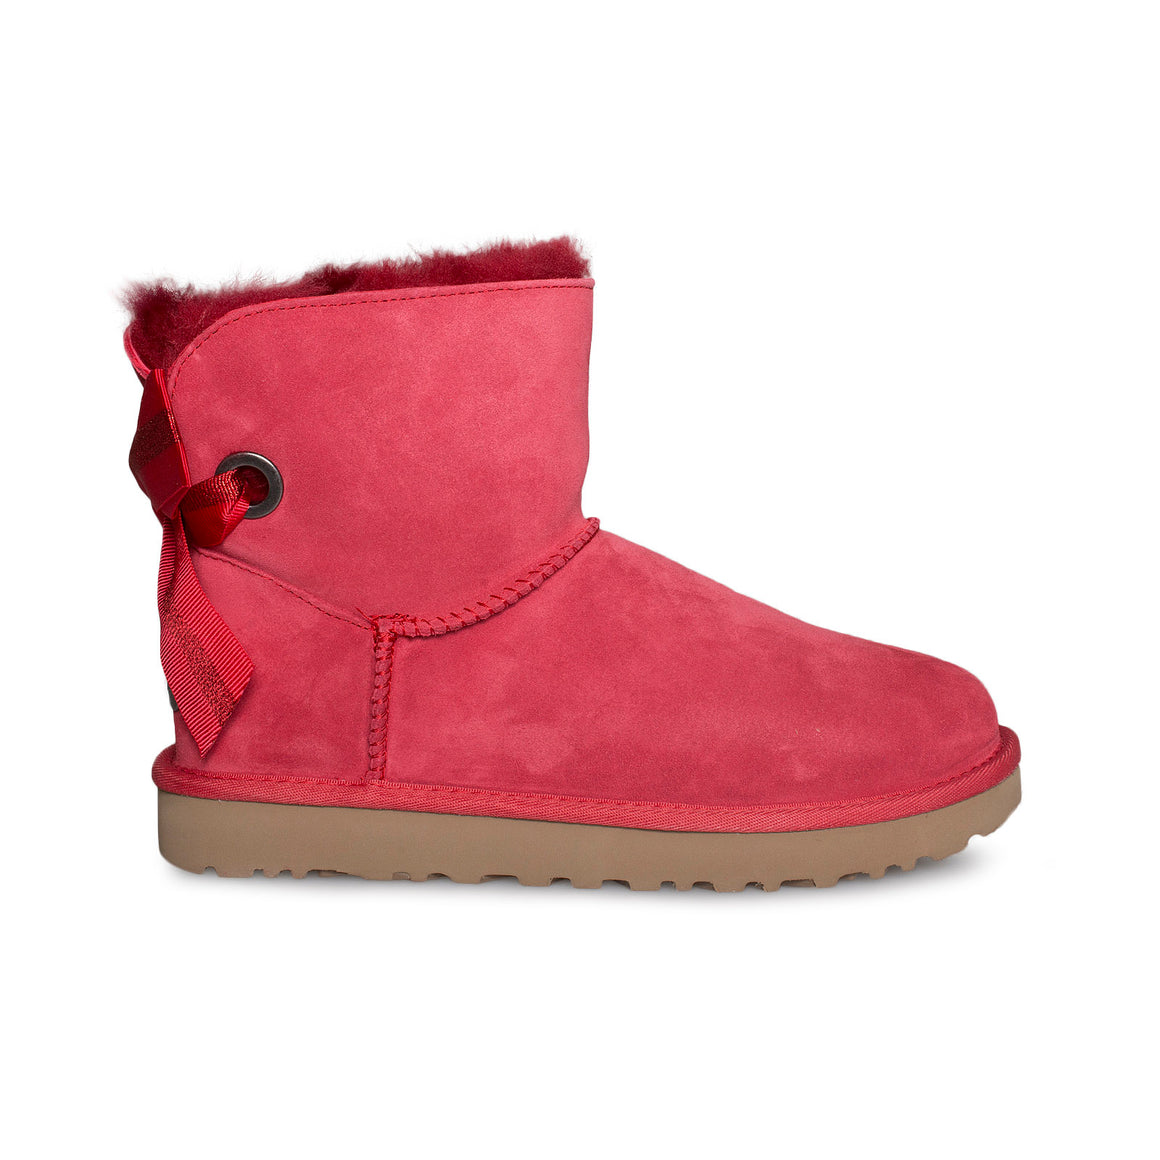 UGG Customizable Bailey Bow Mini Ribbon Red Boots - Women's